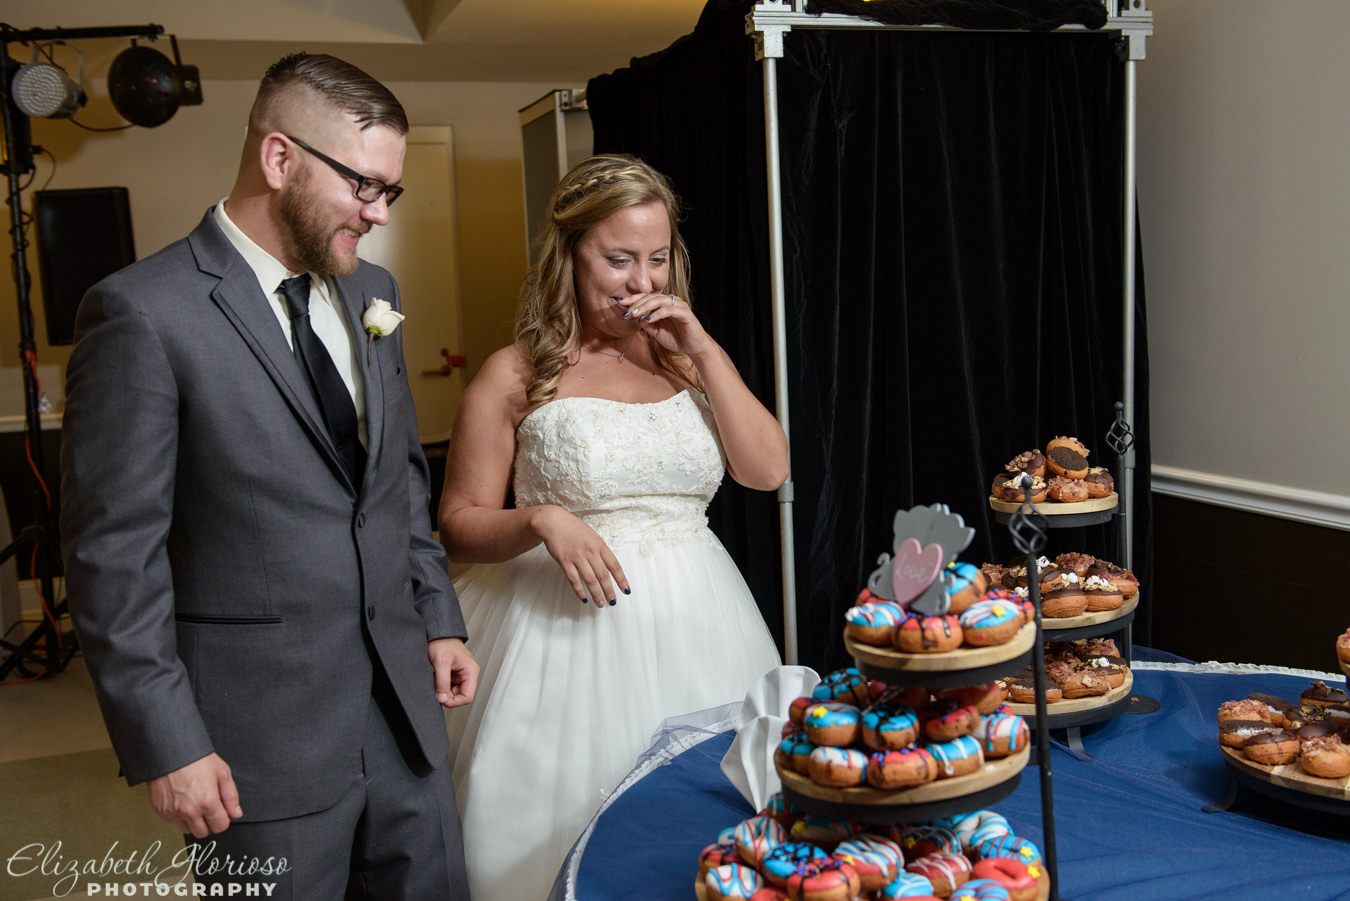 Zakovec_Wedding_Glorioso_Photography_Cleveland-139